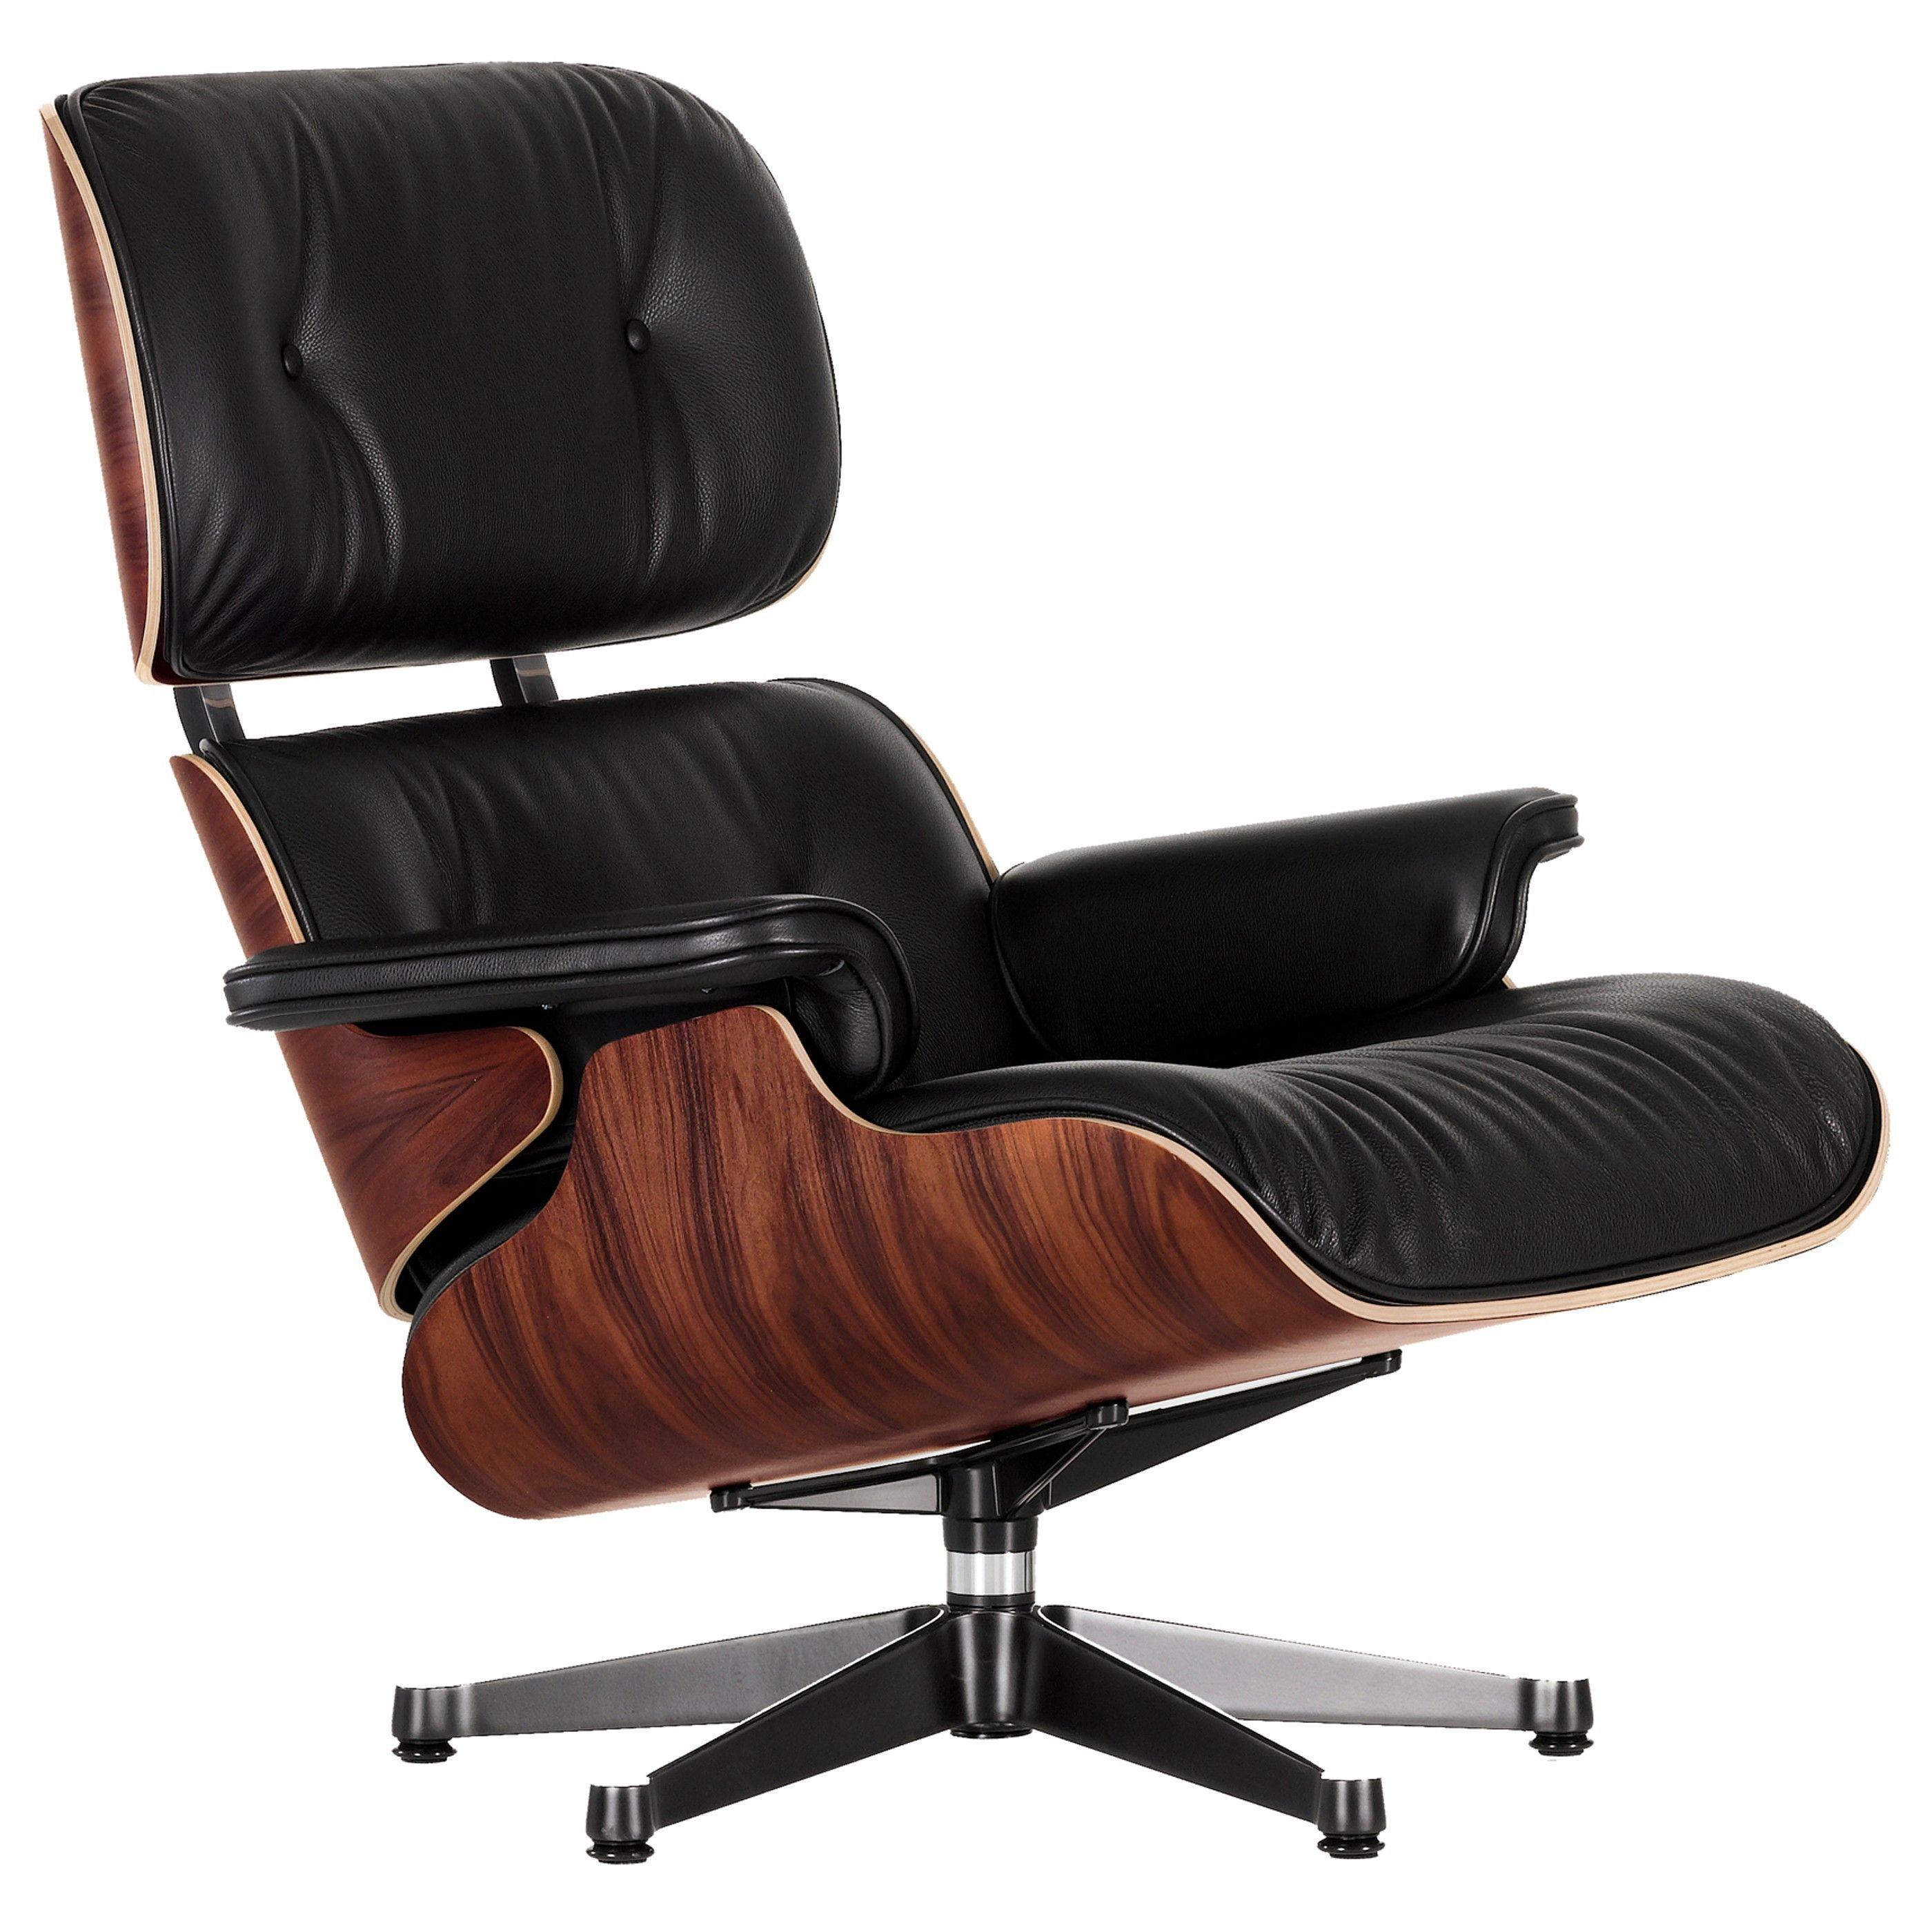 Vitra Sessel Google Suche Vitra Lounge Chair Eames Lounge